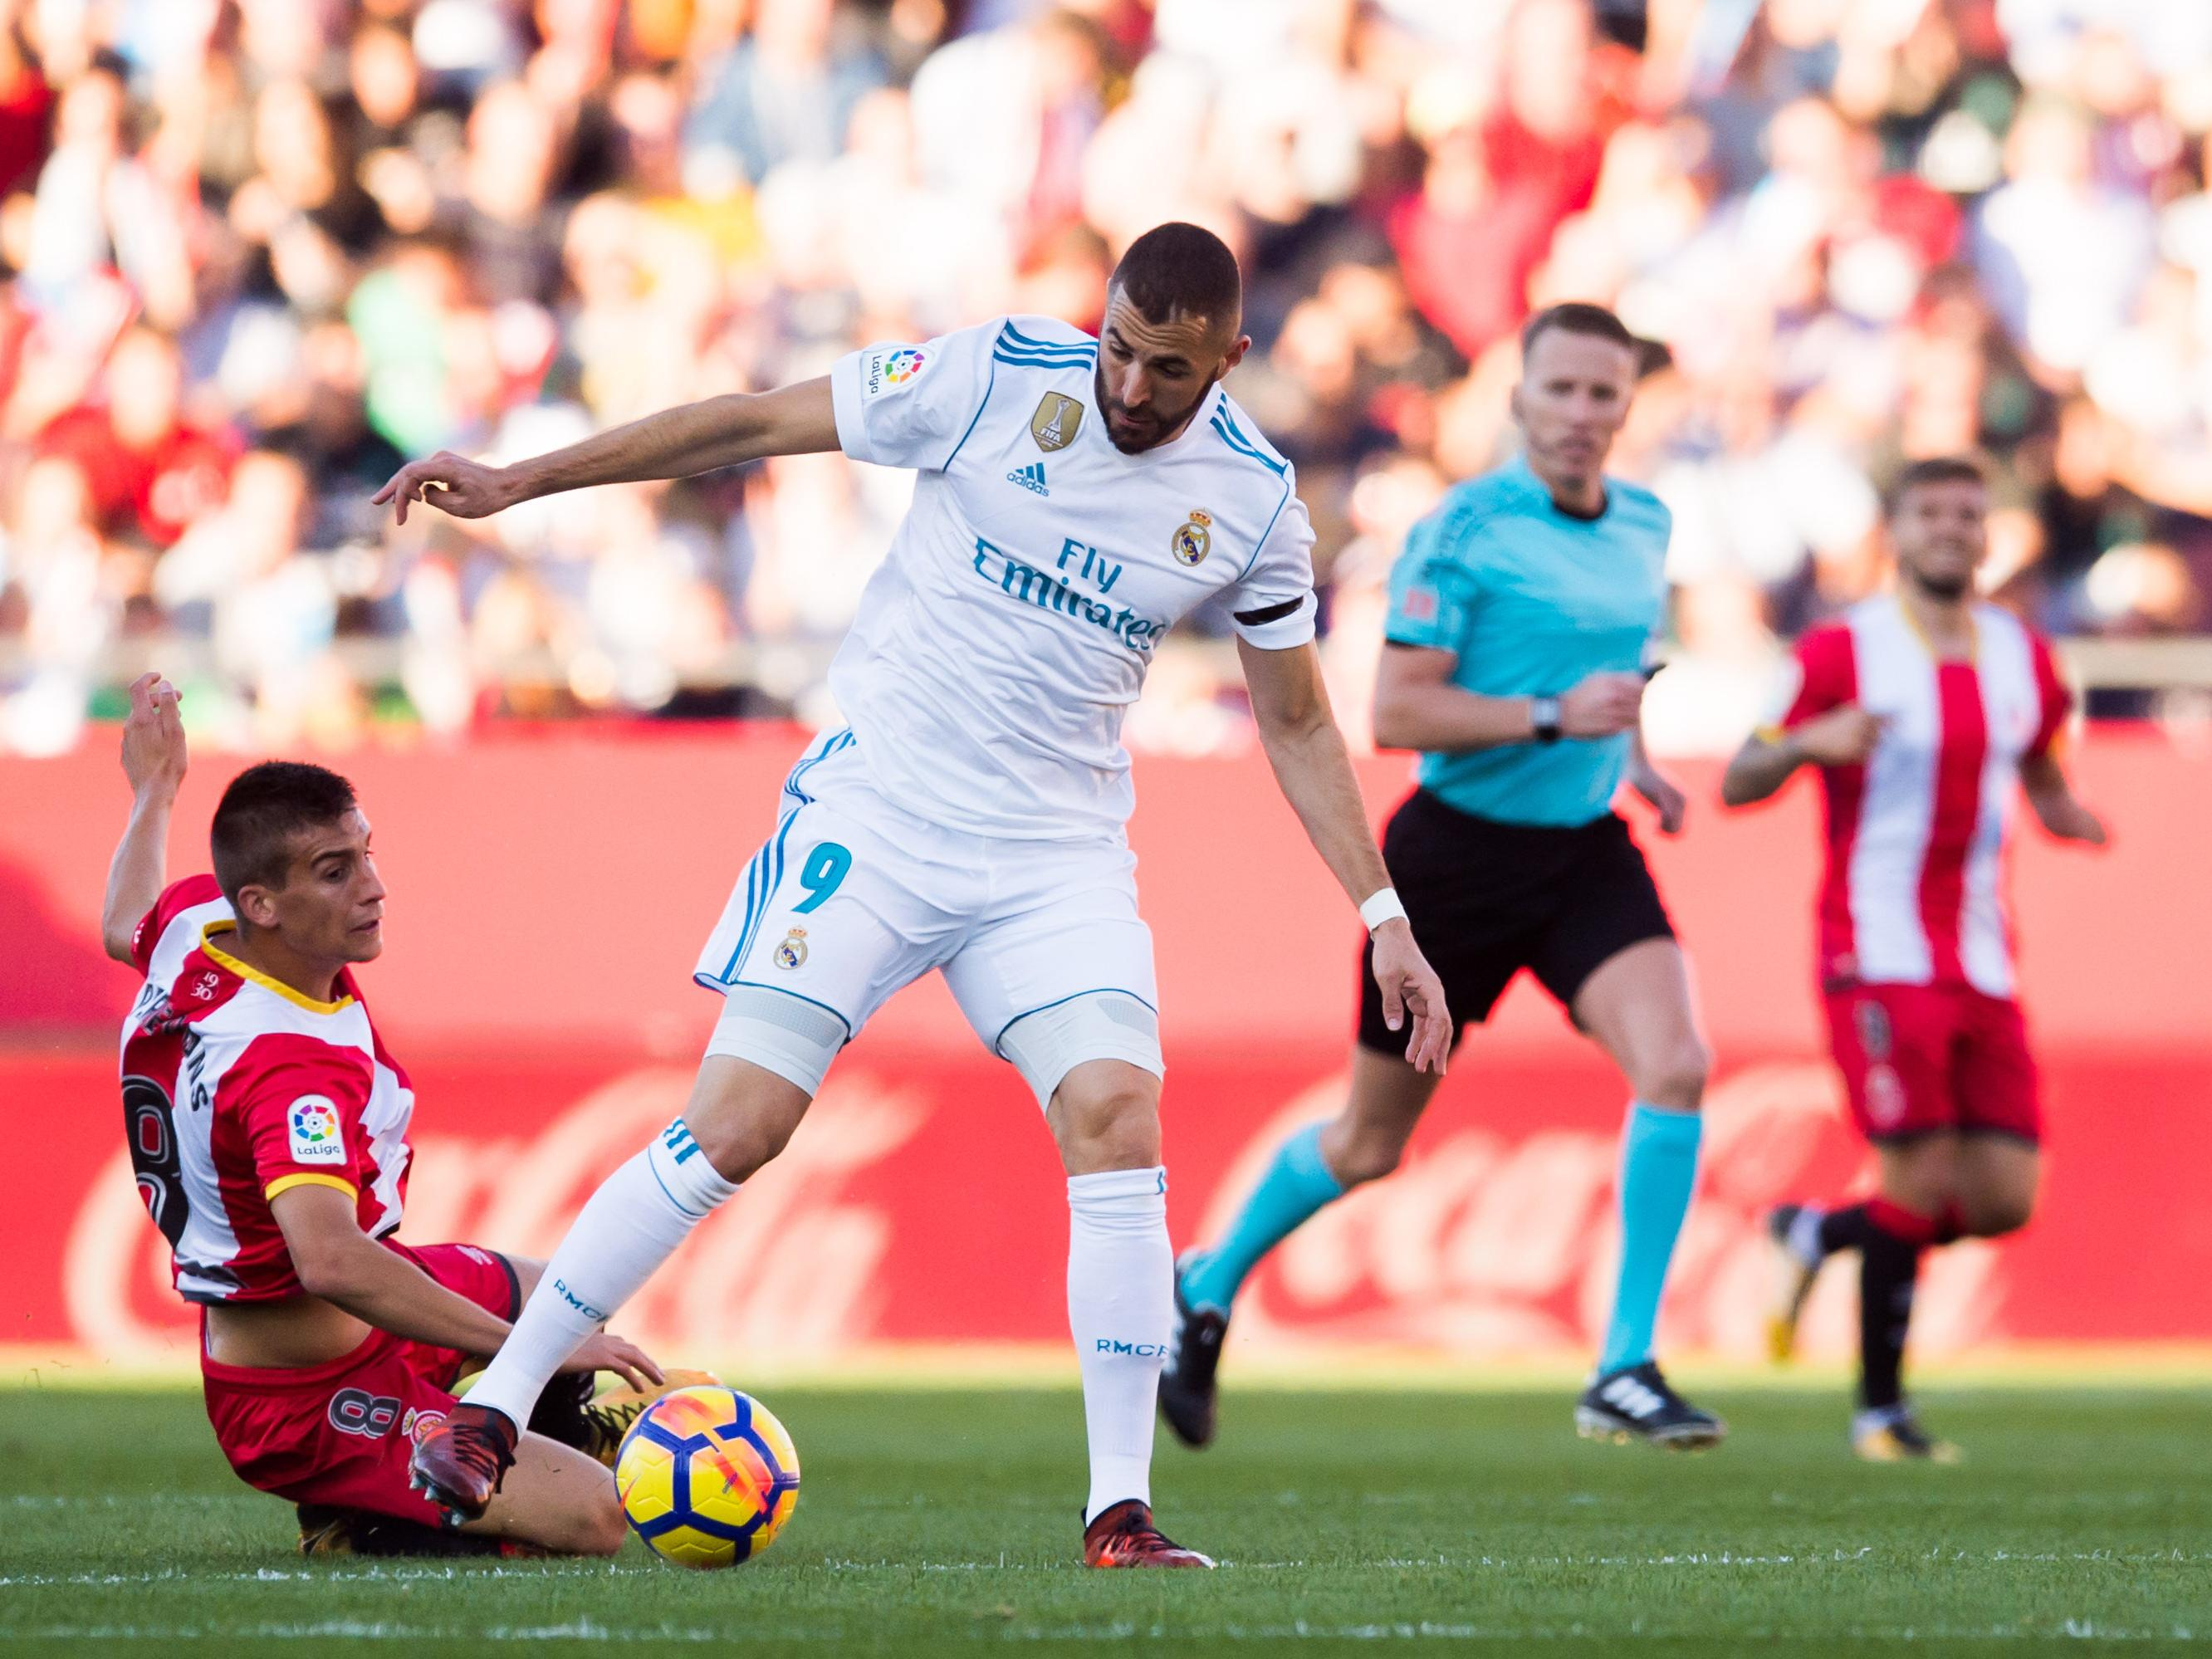 Ver real madrid vs girona en vivo hoy merengues caen 2 for Futbol real madrid hoy